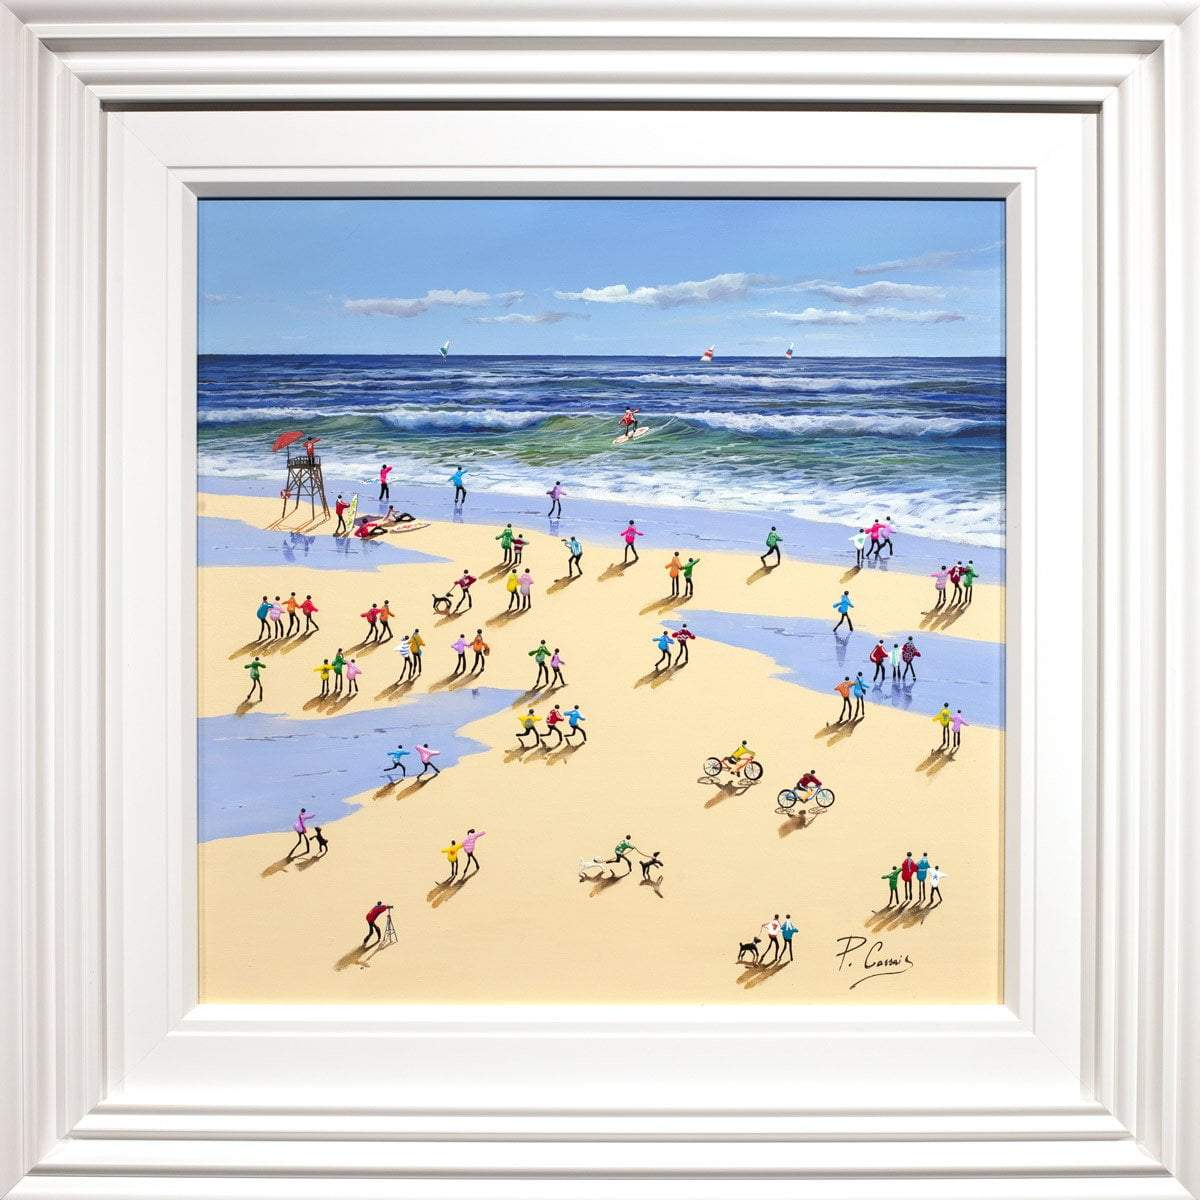 The Joys of Summer - Original Paola Cassais Framed